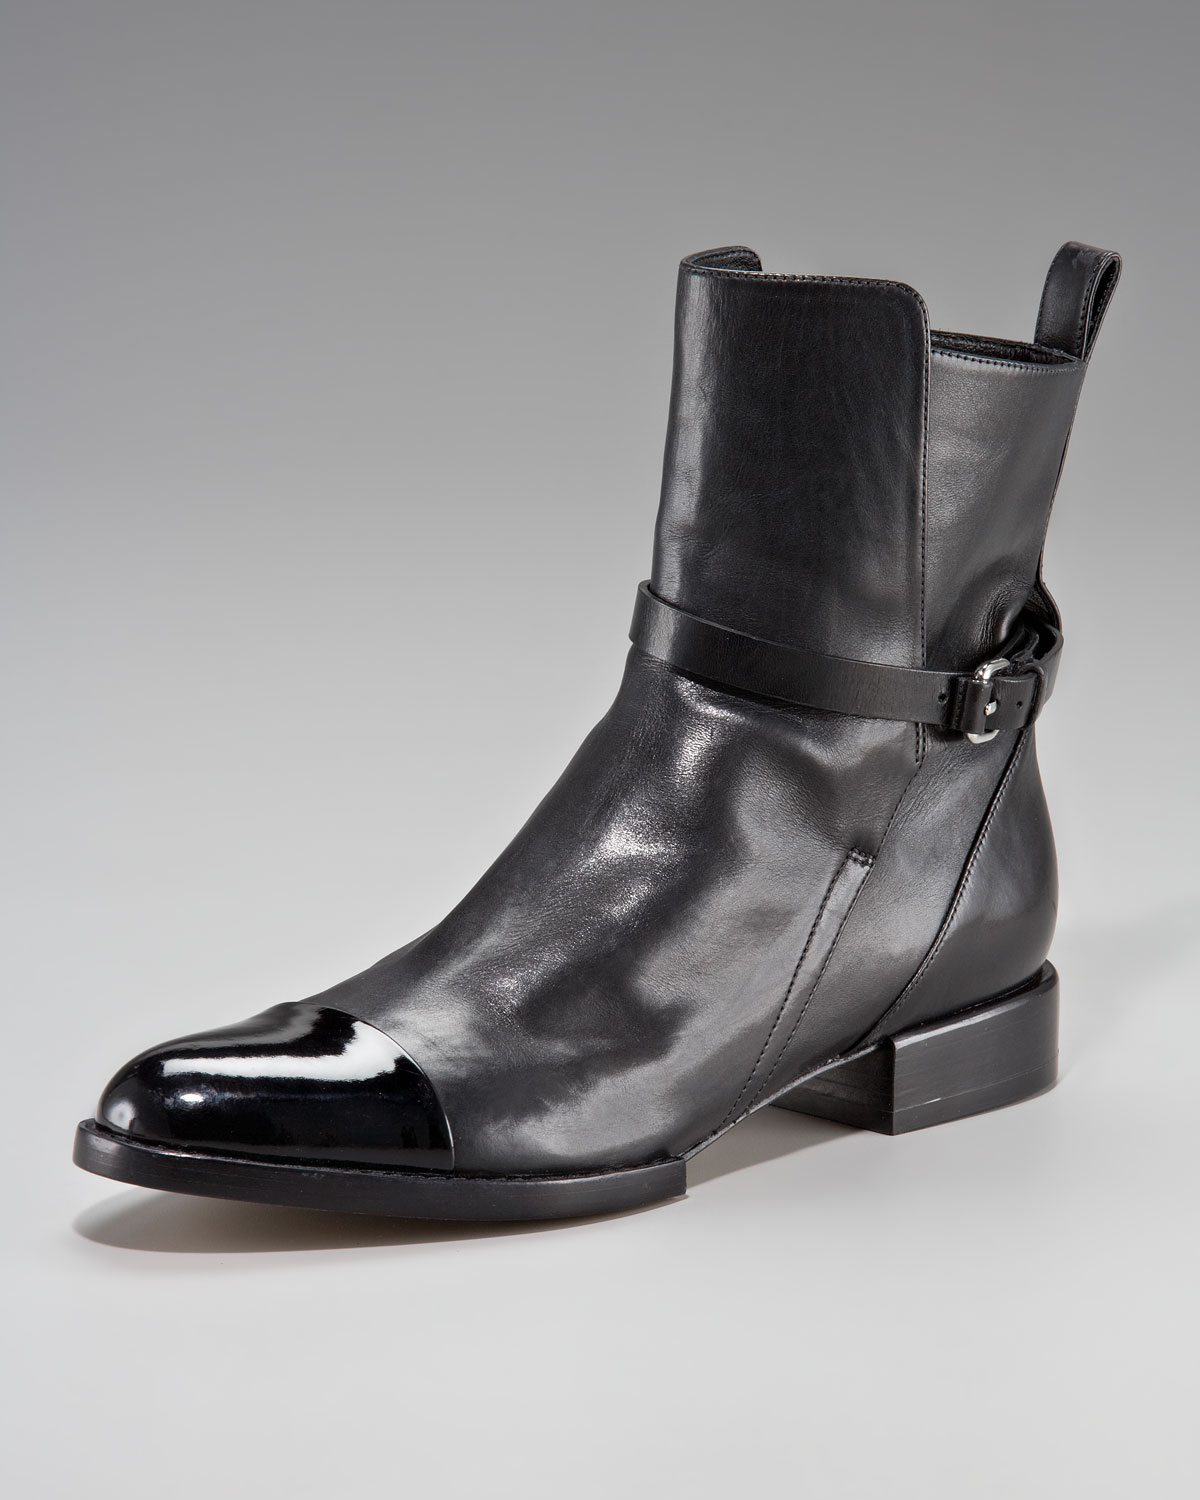 Alexander Wang Leather Cap-Toe Ankle Boots buy cheap genuine clearance wide range of cheap sale supply d7HT4roj